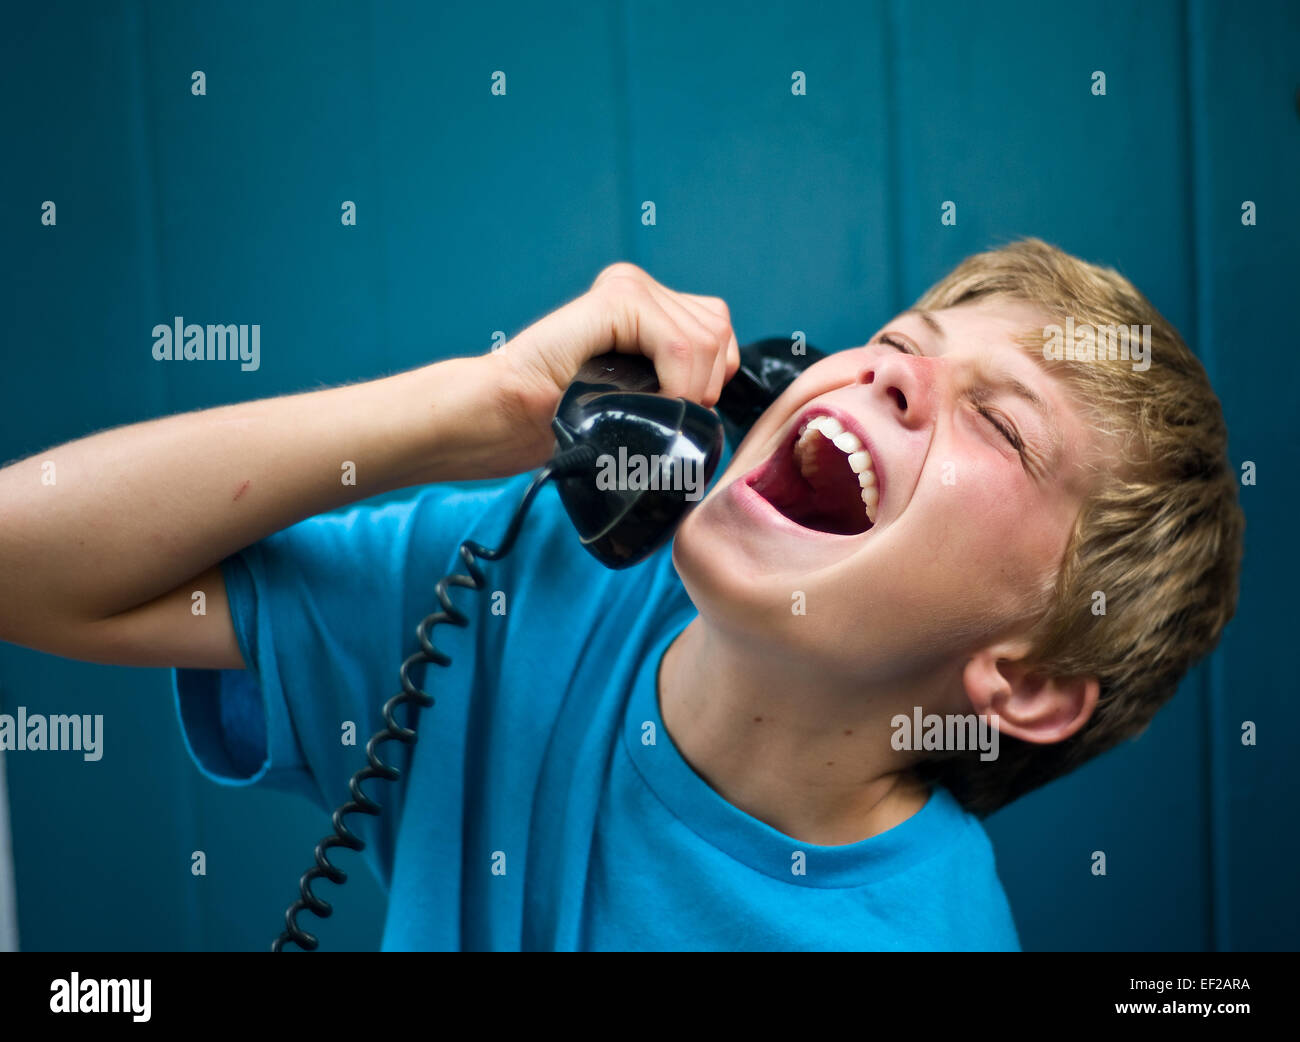 Child 10,11,12,13 laughing while talking on telephone, holding receiver - Stock Image